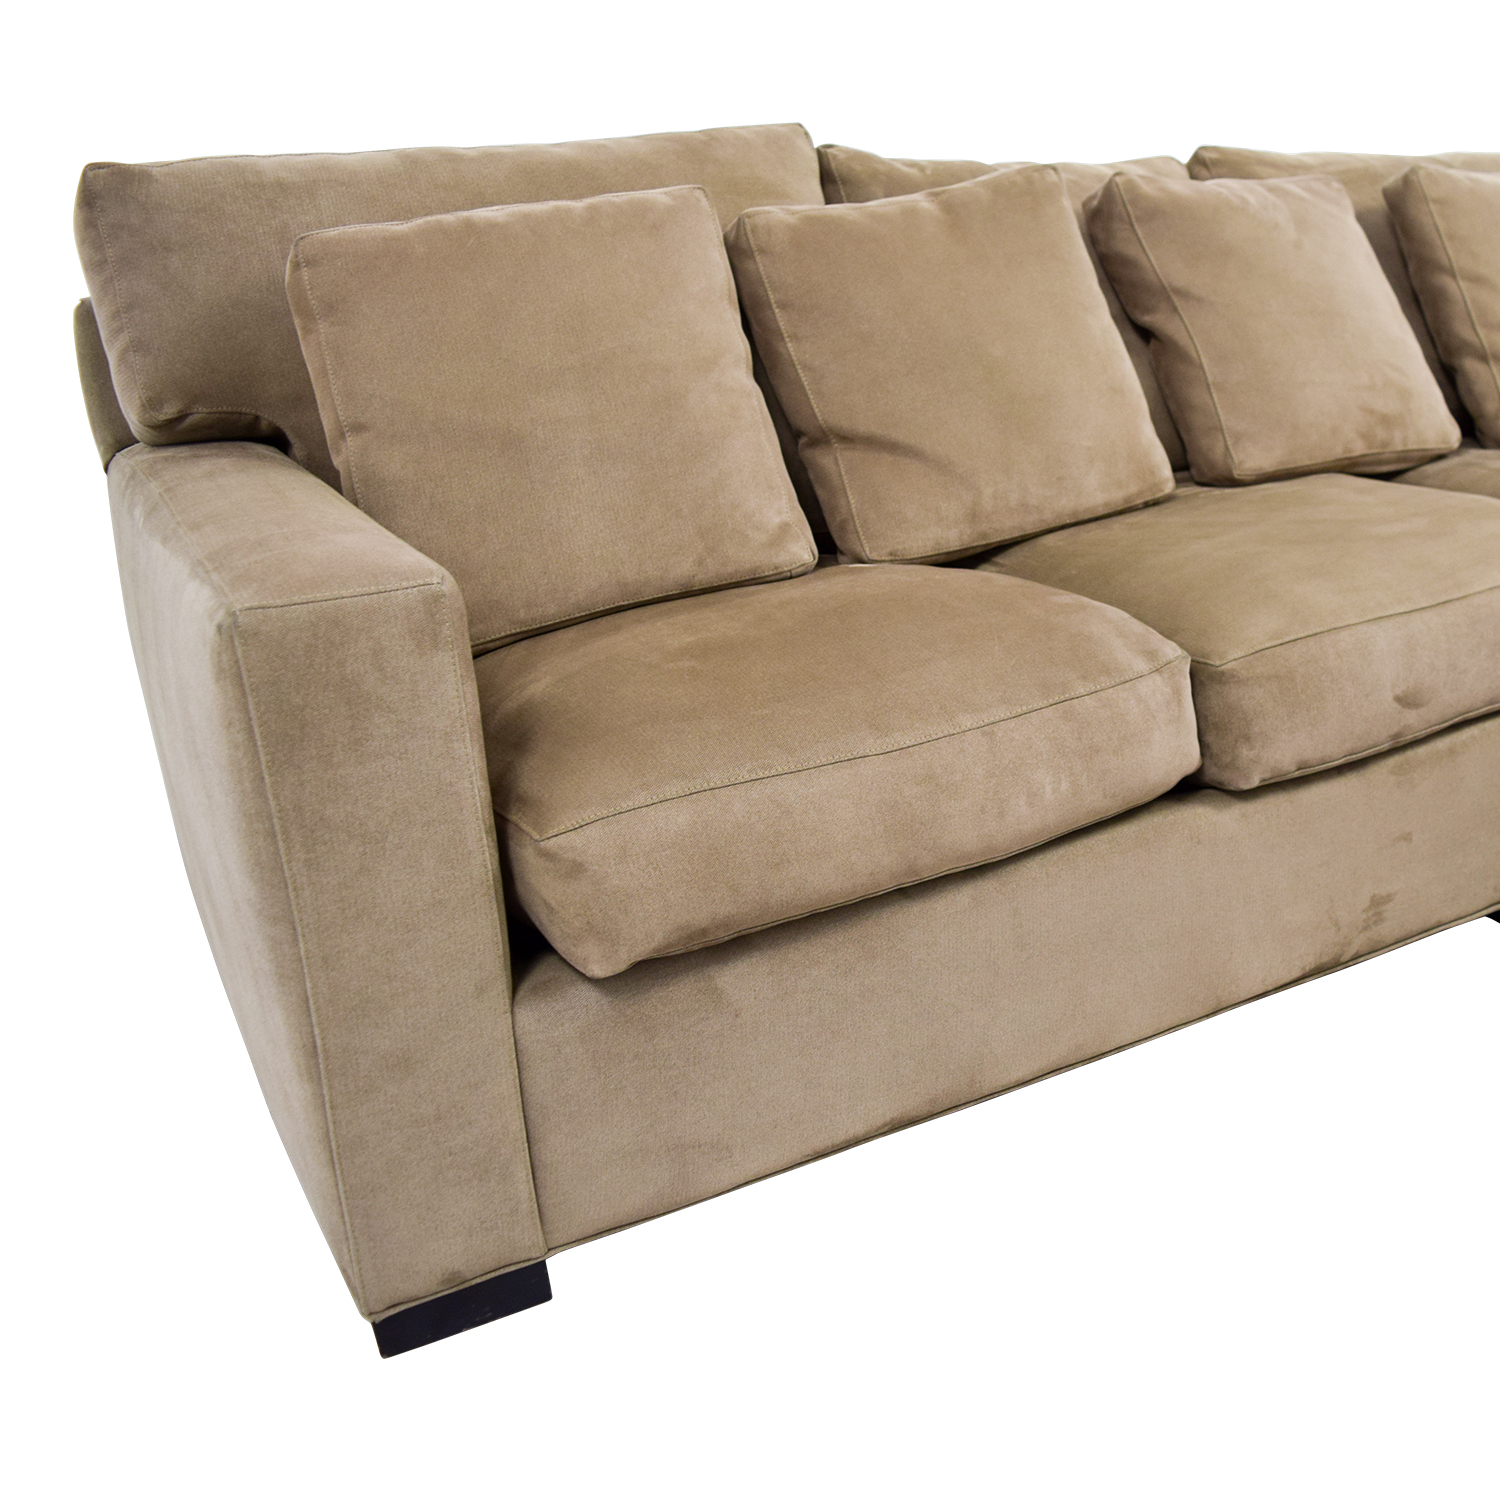 2nd hand sectional sofa sofascore chelsea vs watford 66 off crate and barrel axis tan right arm